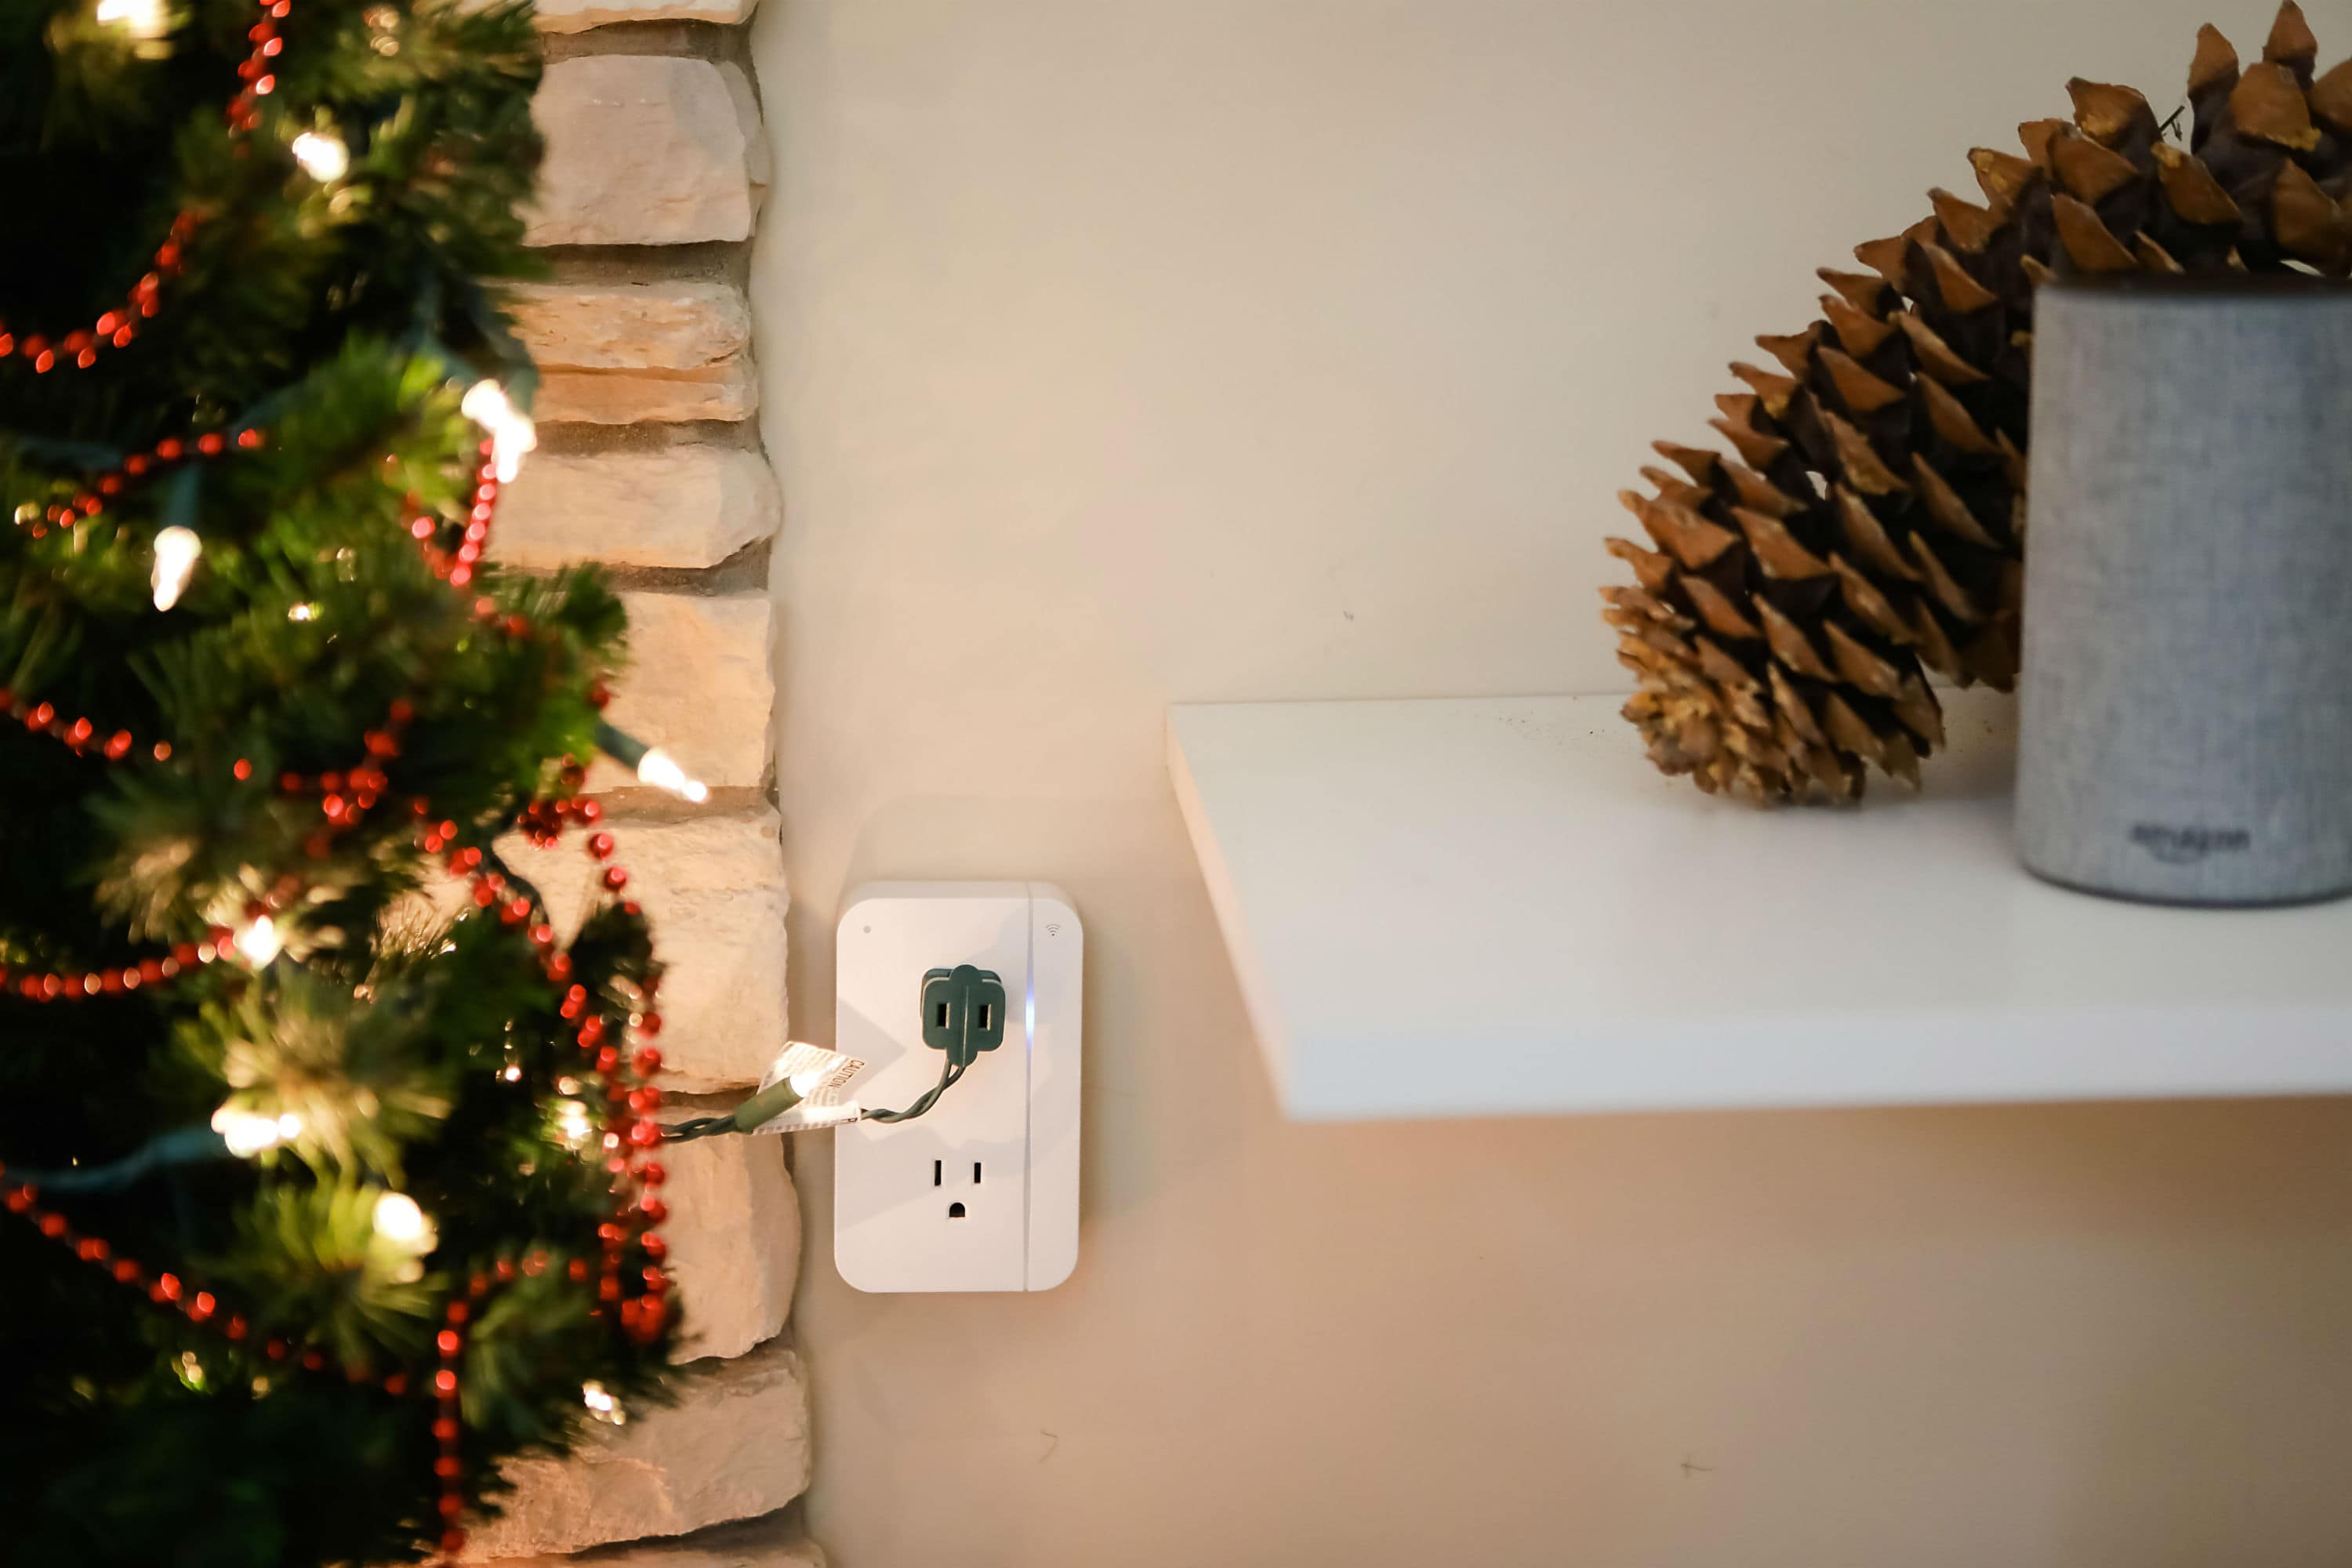 Nobody's outlet is ever this easy to reach, which makes the ConnectSense Smart Outlet2 with HomeKit compatibility even more useful.